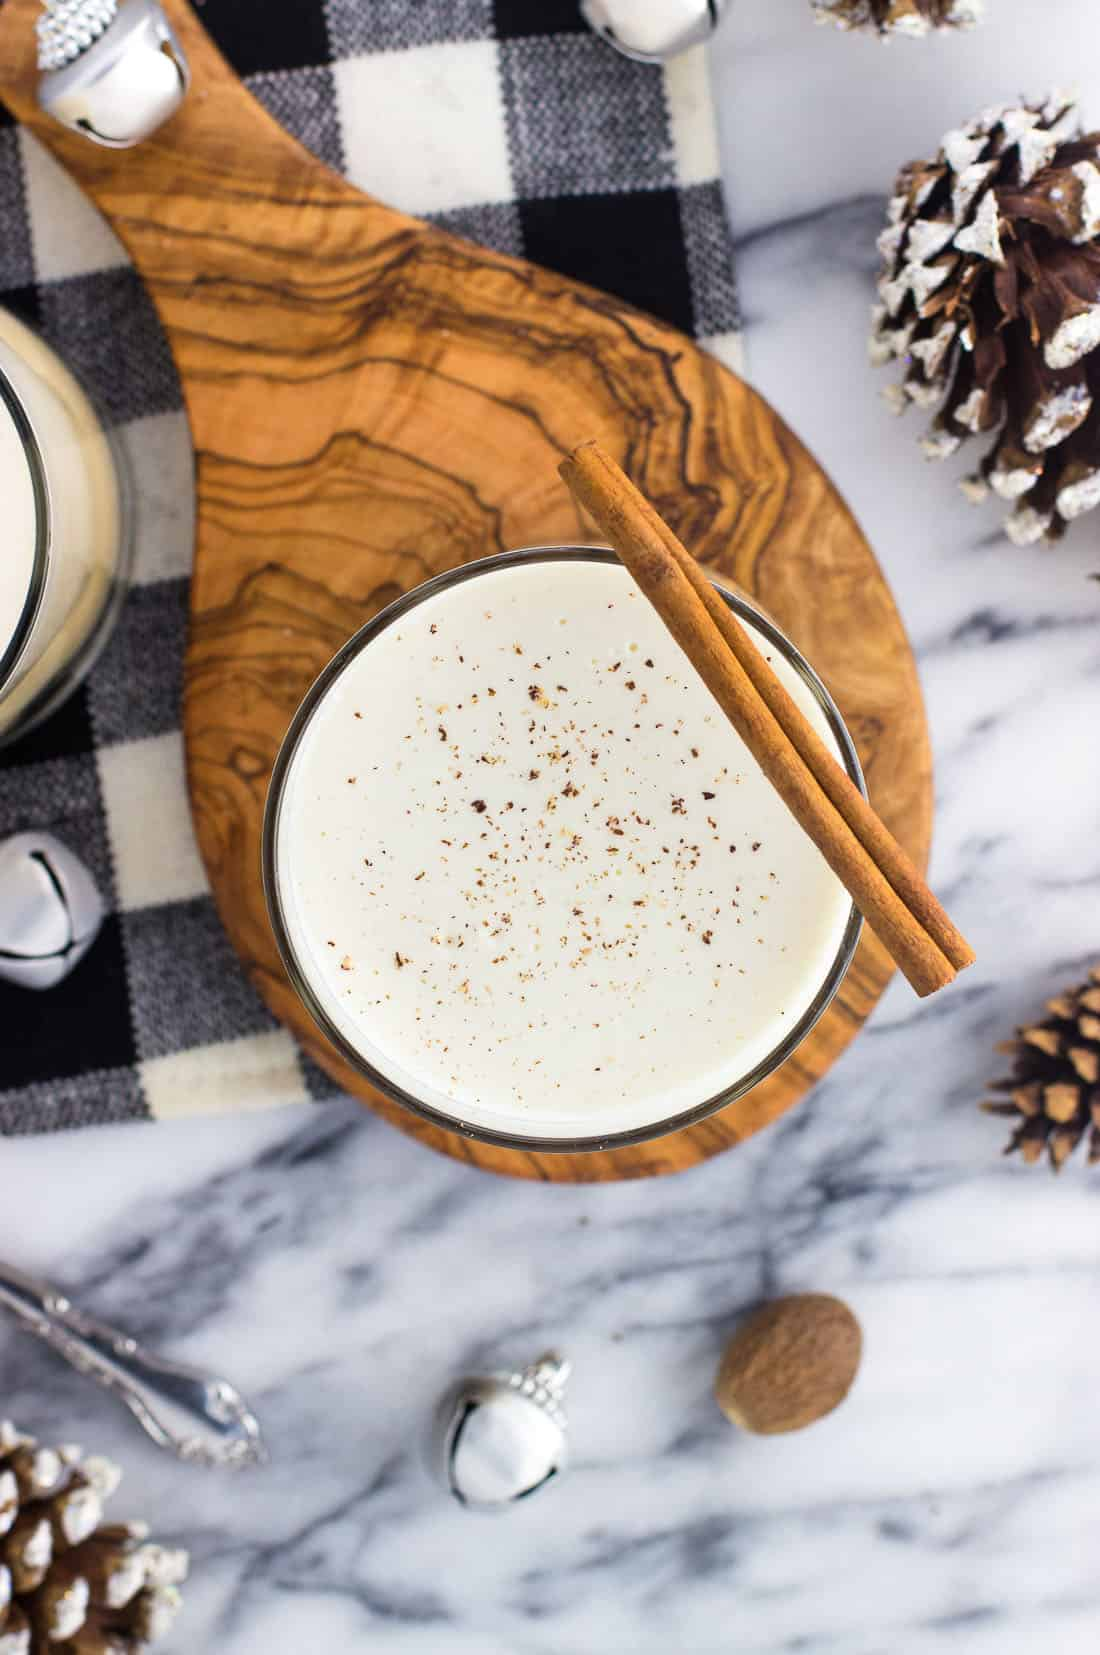 An overhead shot of a glass of eggnog dusted with grated nutmeg and garnished with a cinnamon stick